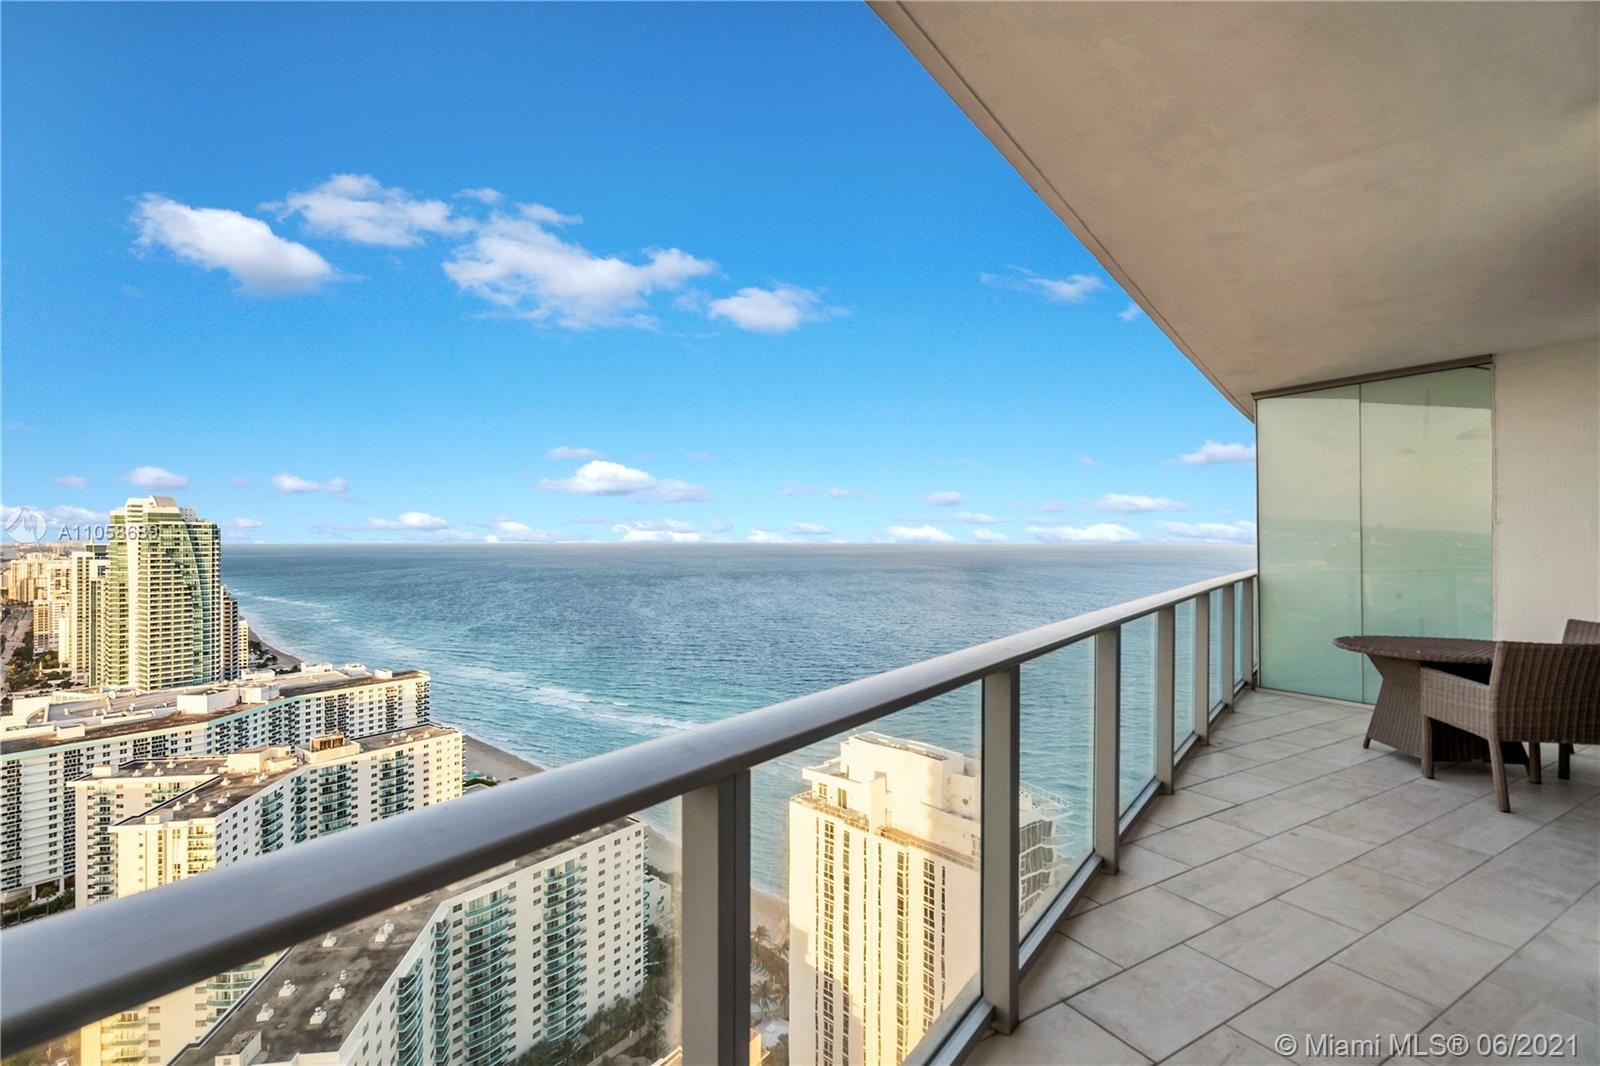 Luxury vacation condo in the ocean, Large balcony overlooking the Ocean and the amazing skyline with